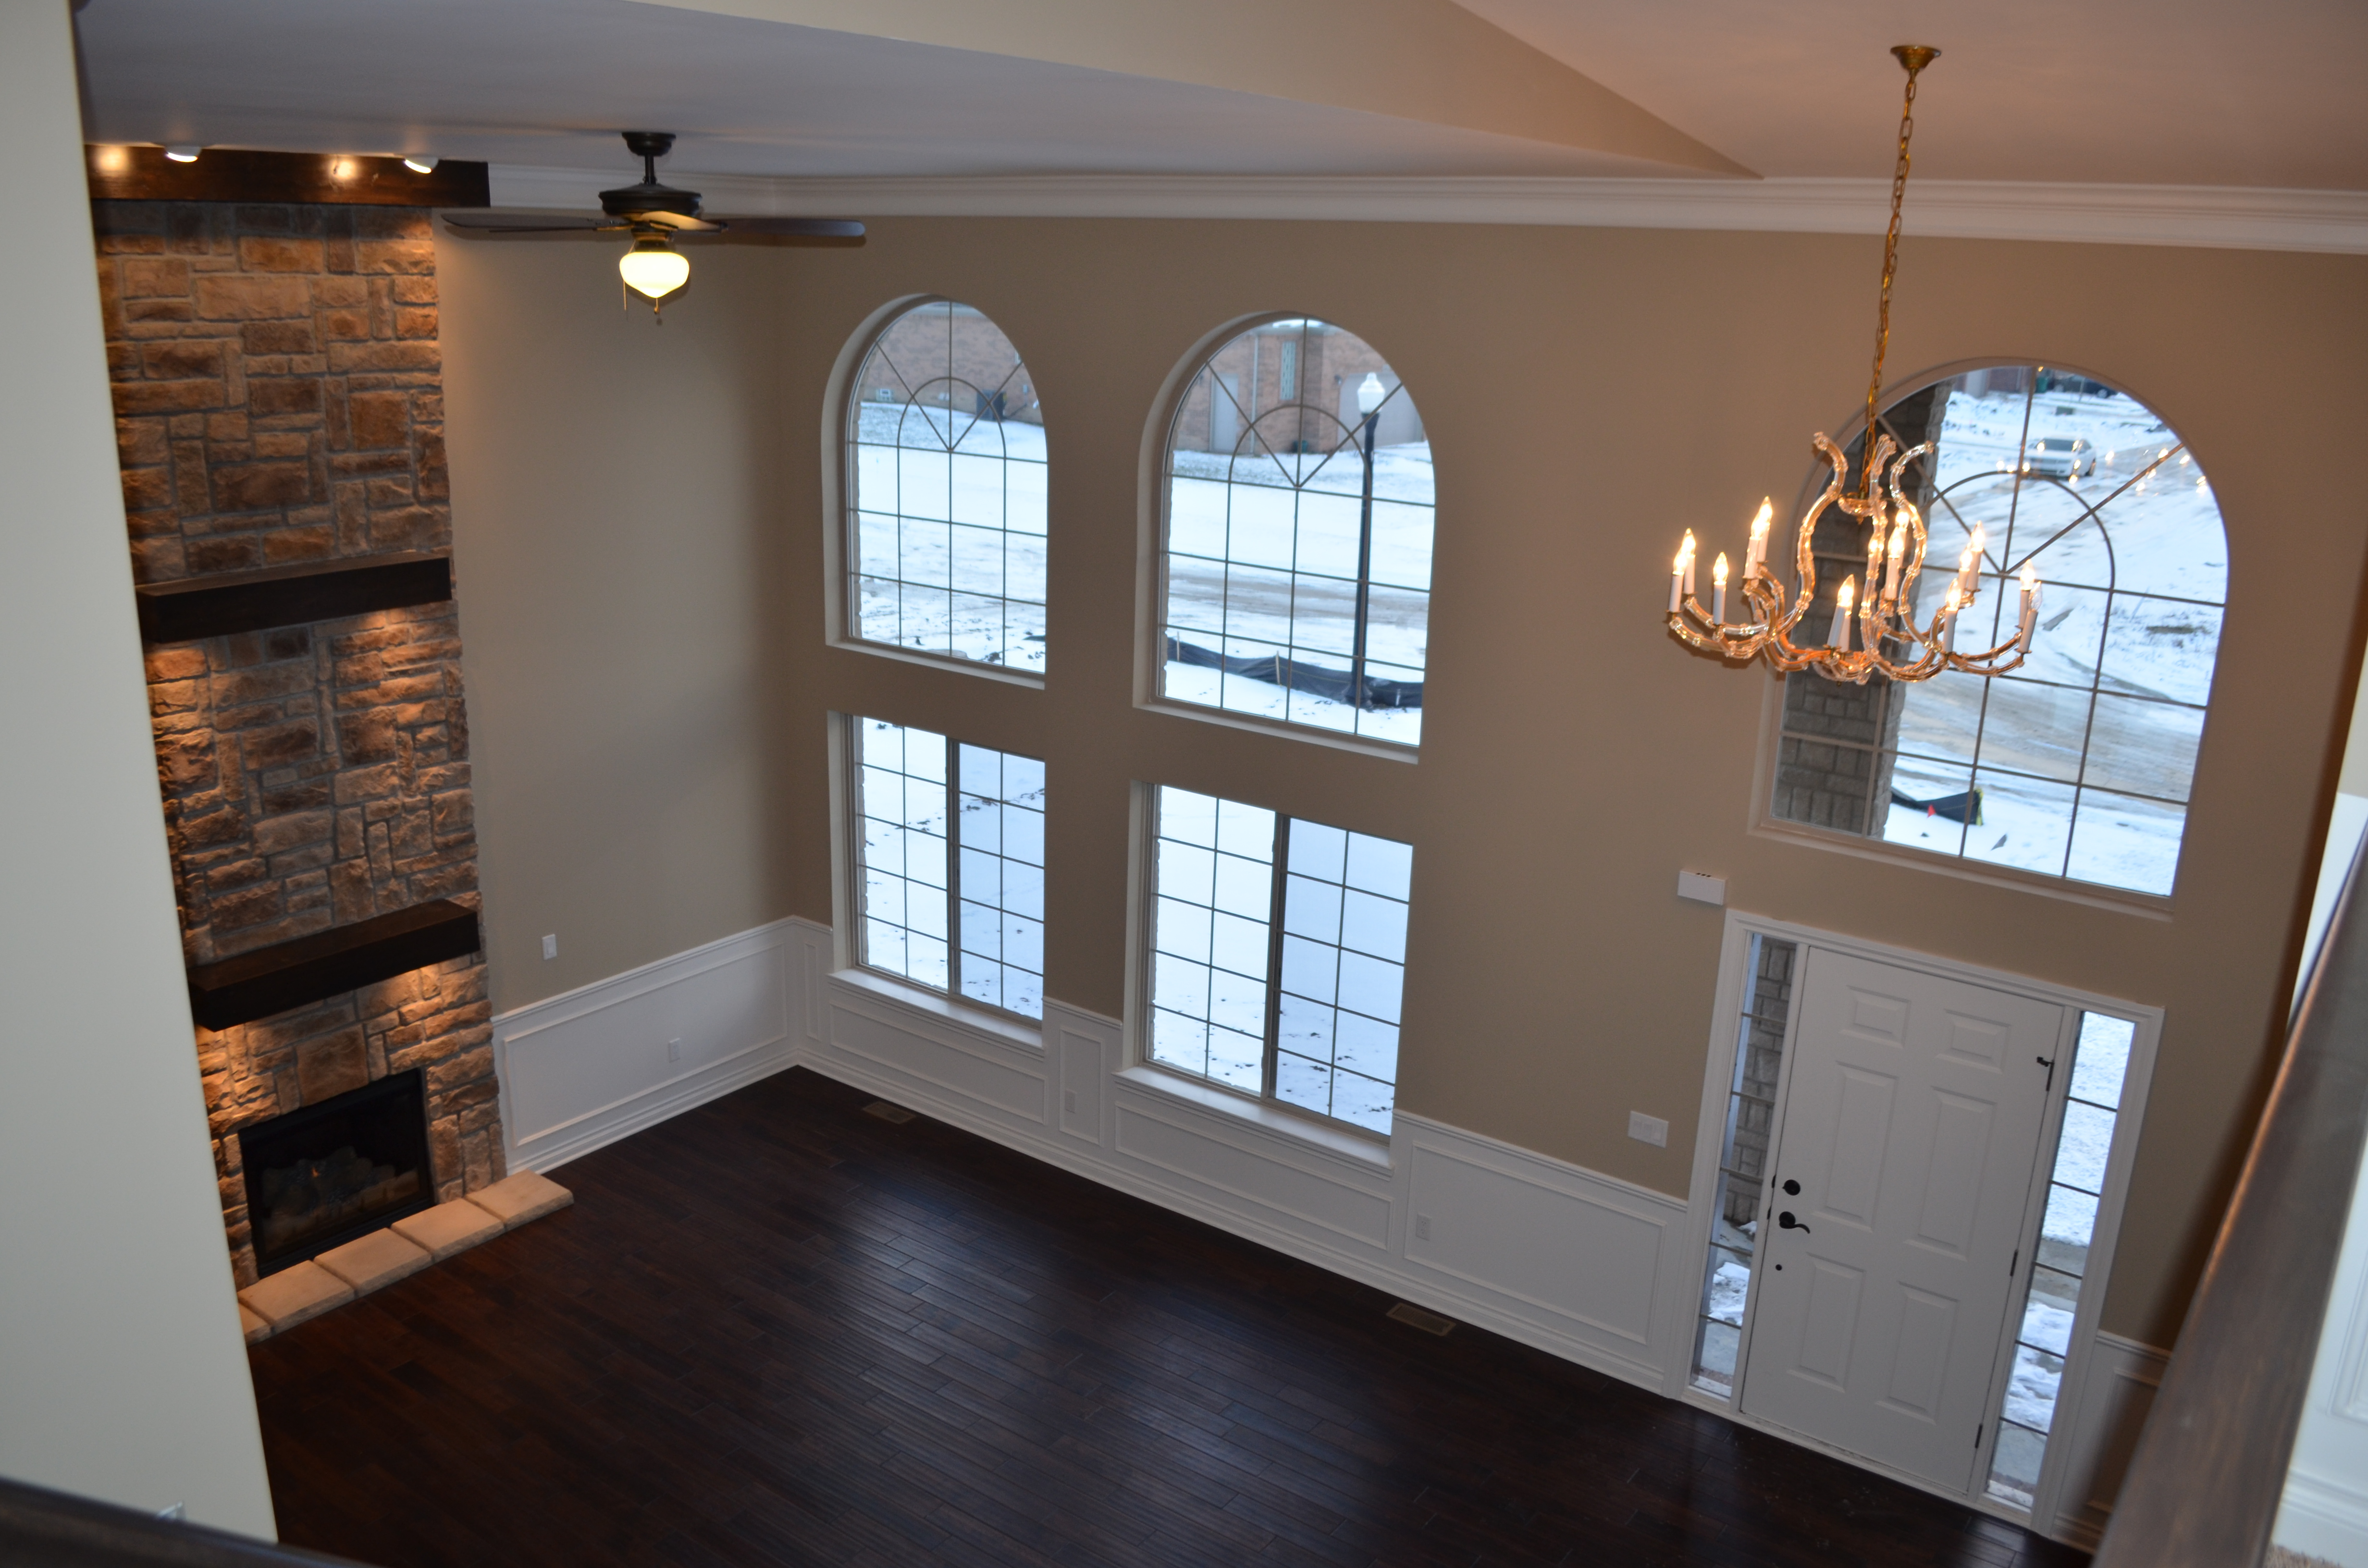 New Homes For Sale, Grand River GR